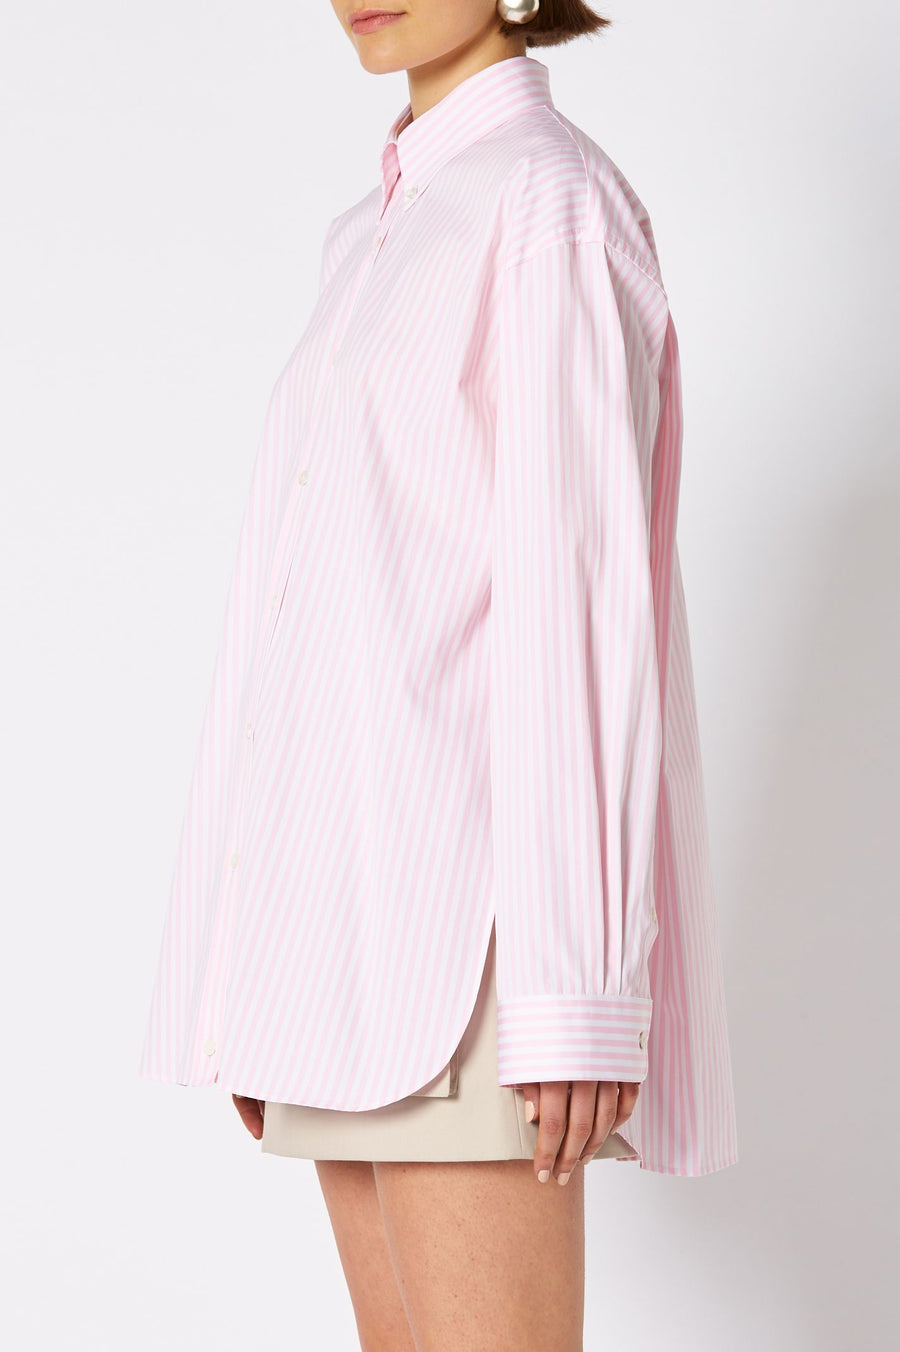 BUTTON COLLAR SHIRT PALE PINK